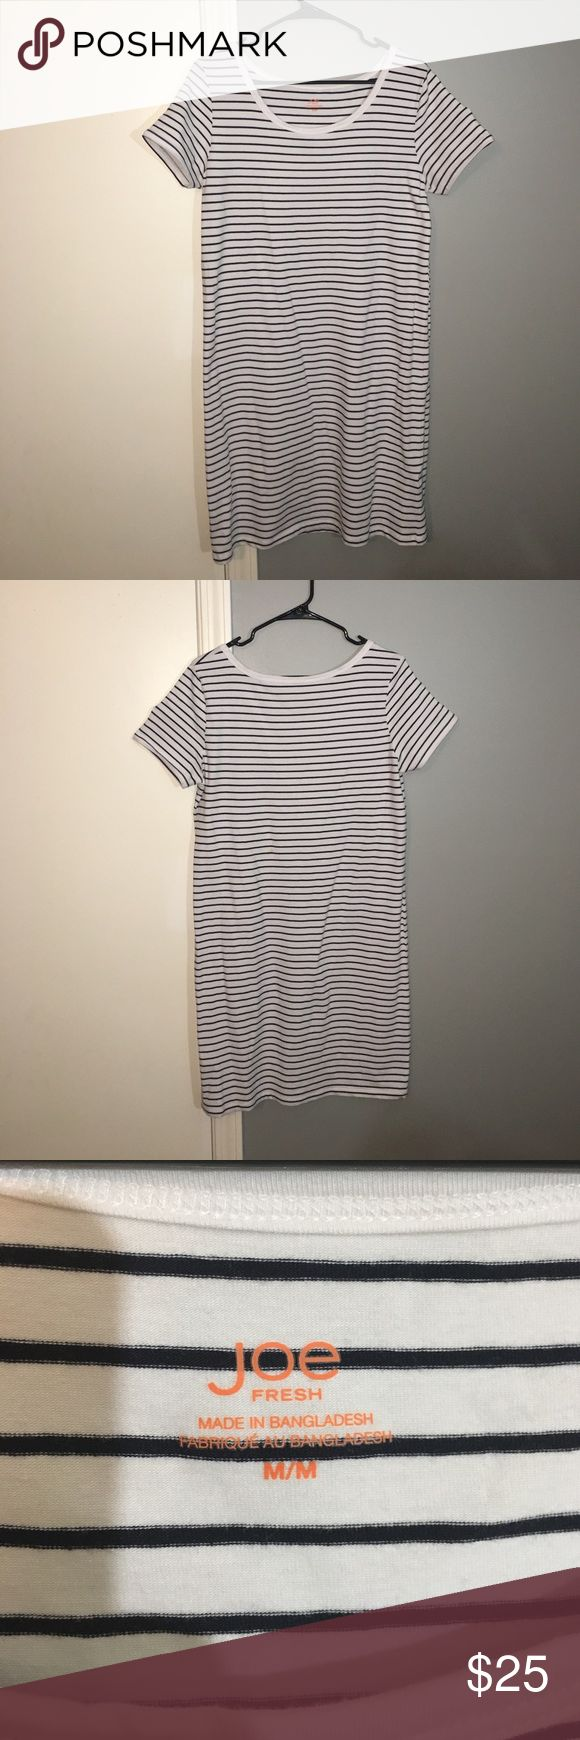 Joe Fresh T-Shirt Dress Joe Fresh T-shirt Dress. Never worn. Very comfy. Great condition! Joe Fresh Dresses